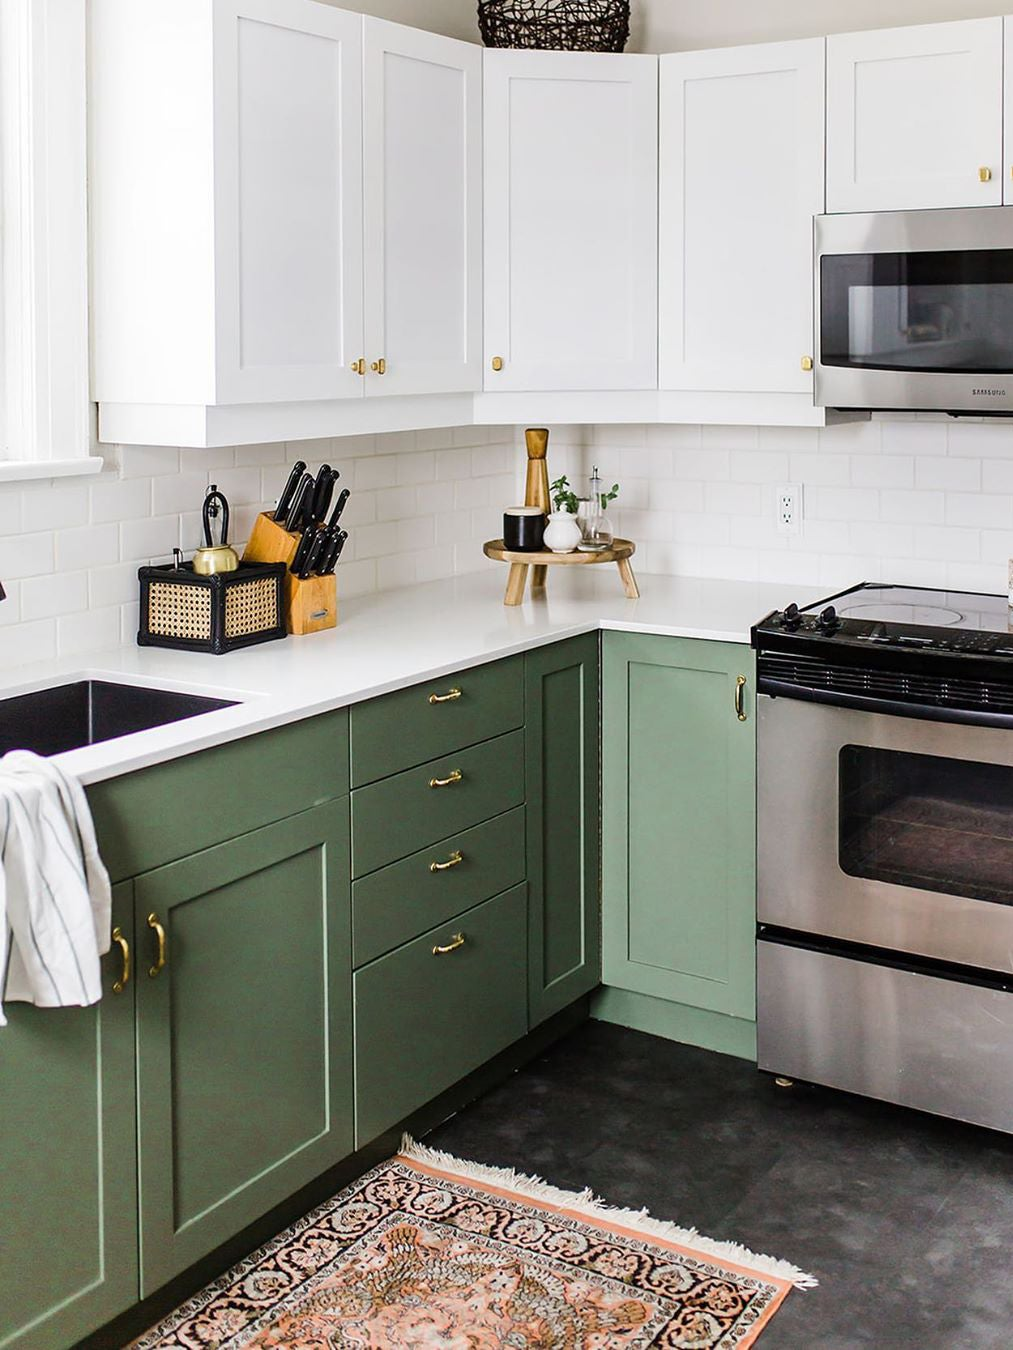 9 Green Kitchen Cabinet Ideas for Your Most Colorful ...